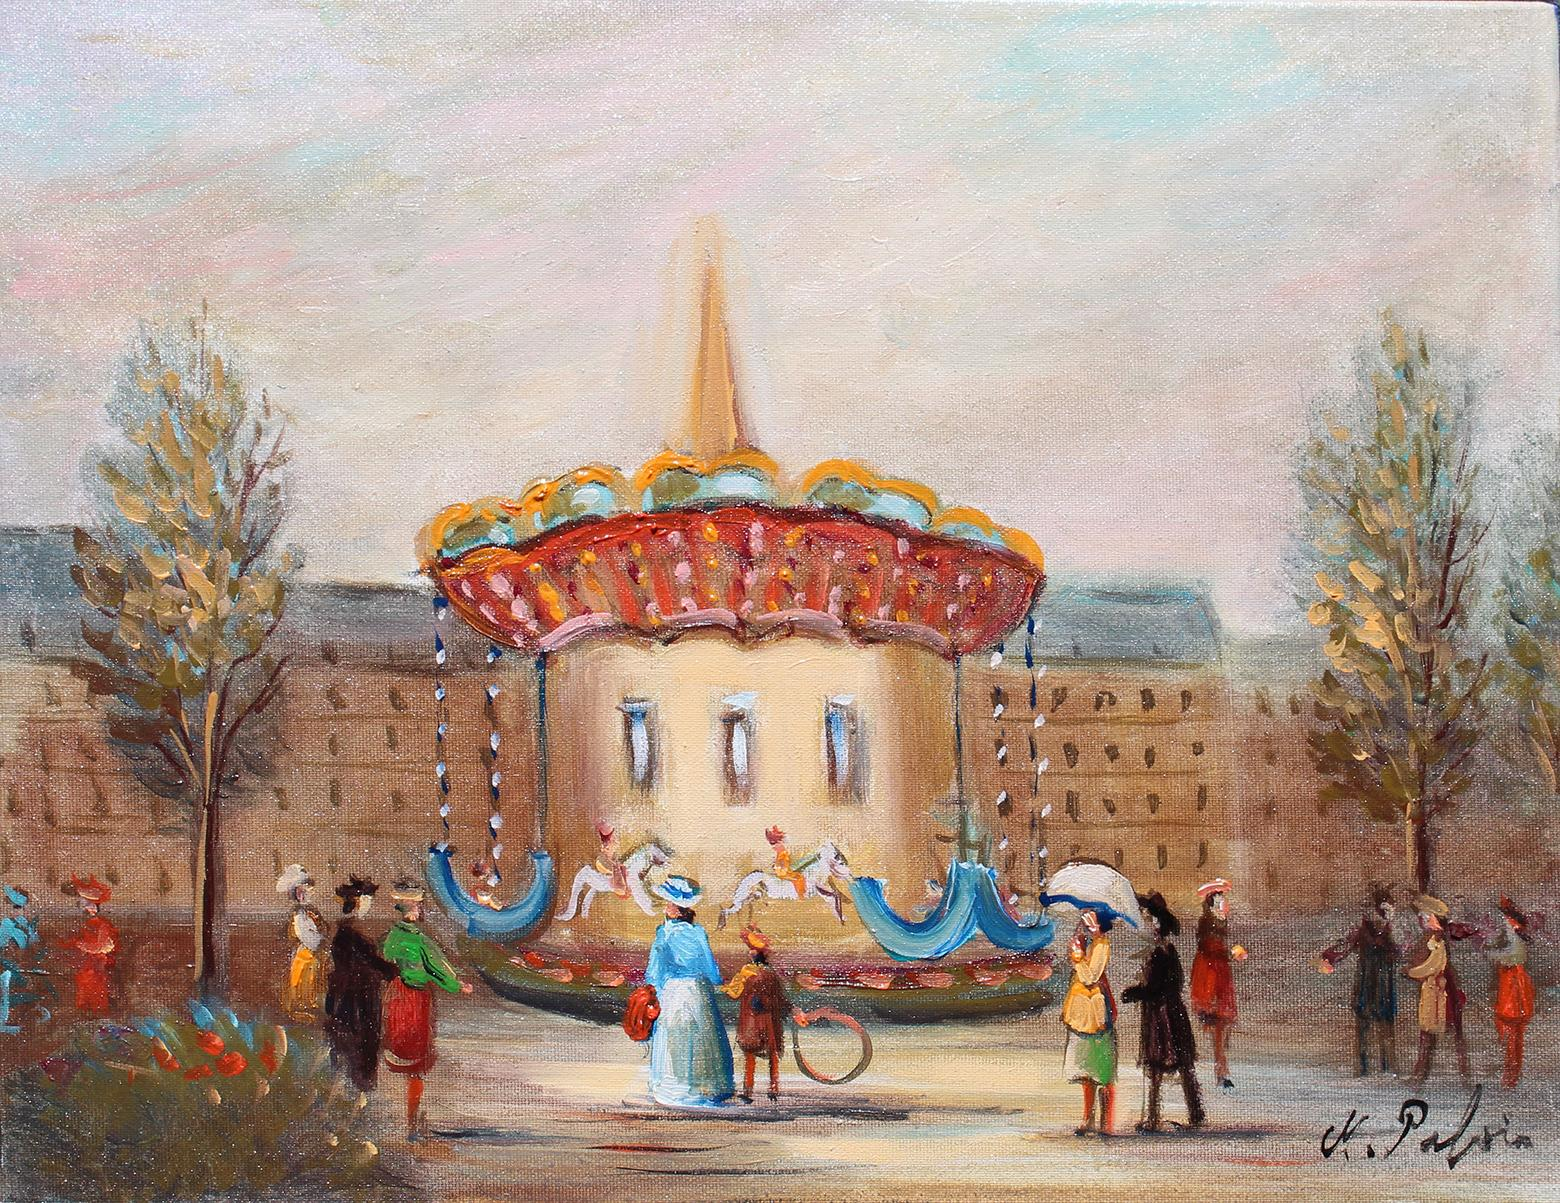 Le Manege, The carousel.